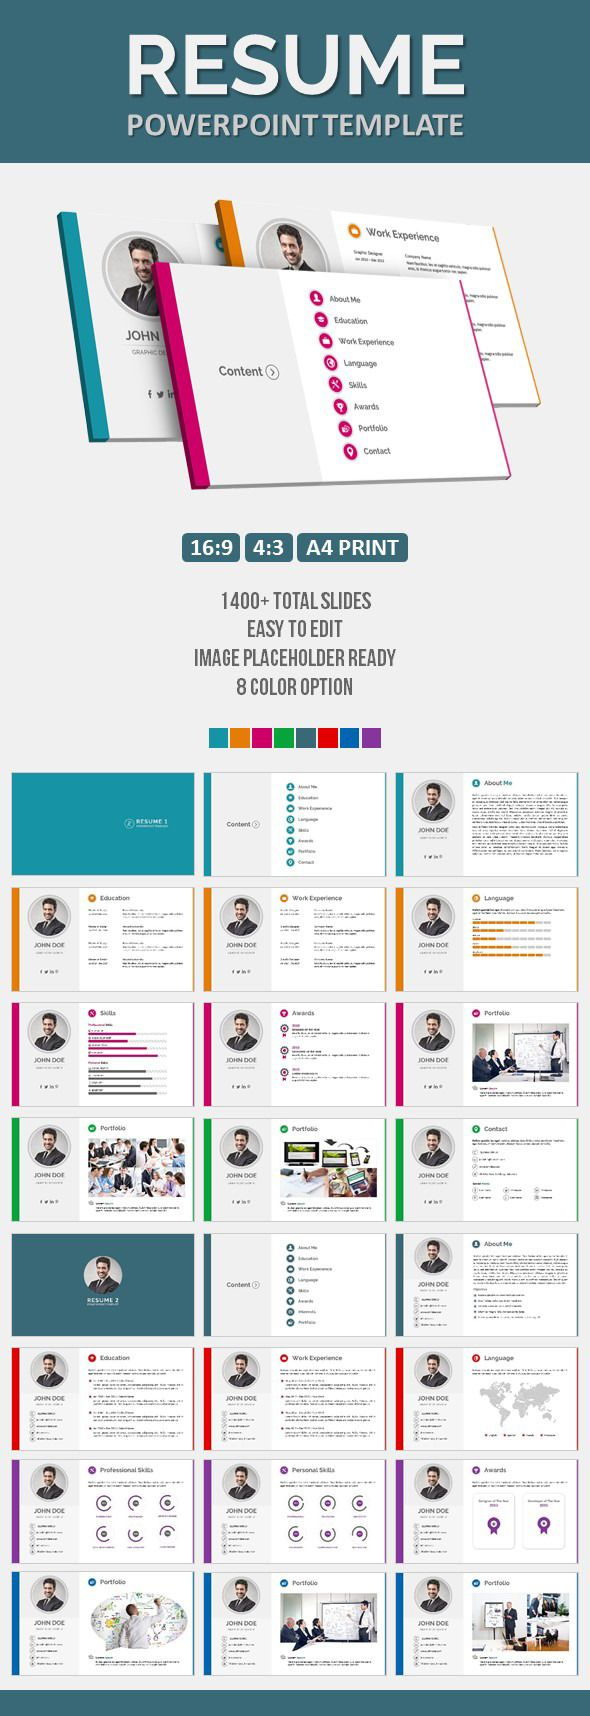 Powerpoint Resume Resume Powerpoint Template  Business Powerpoint Templates Template